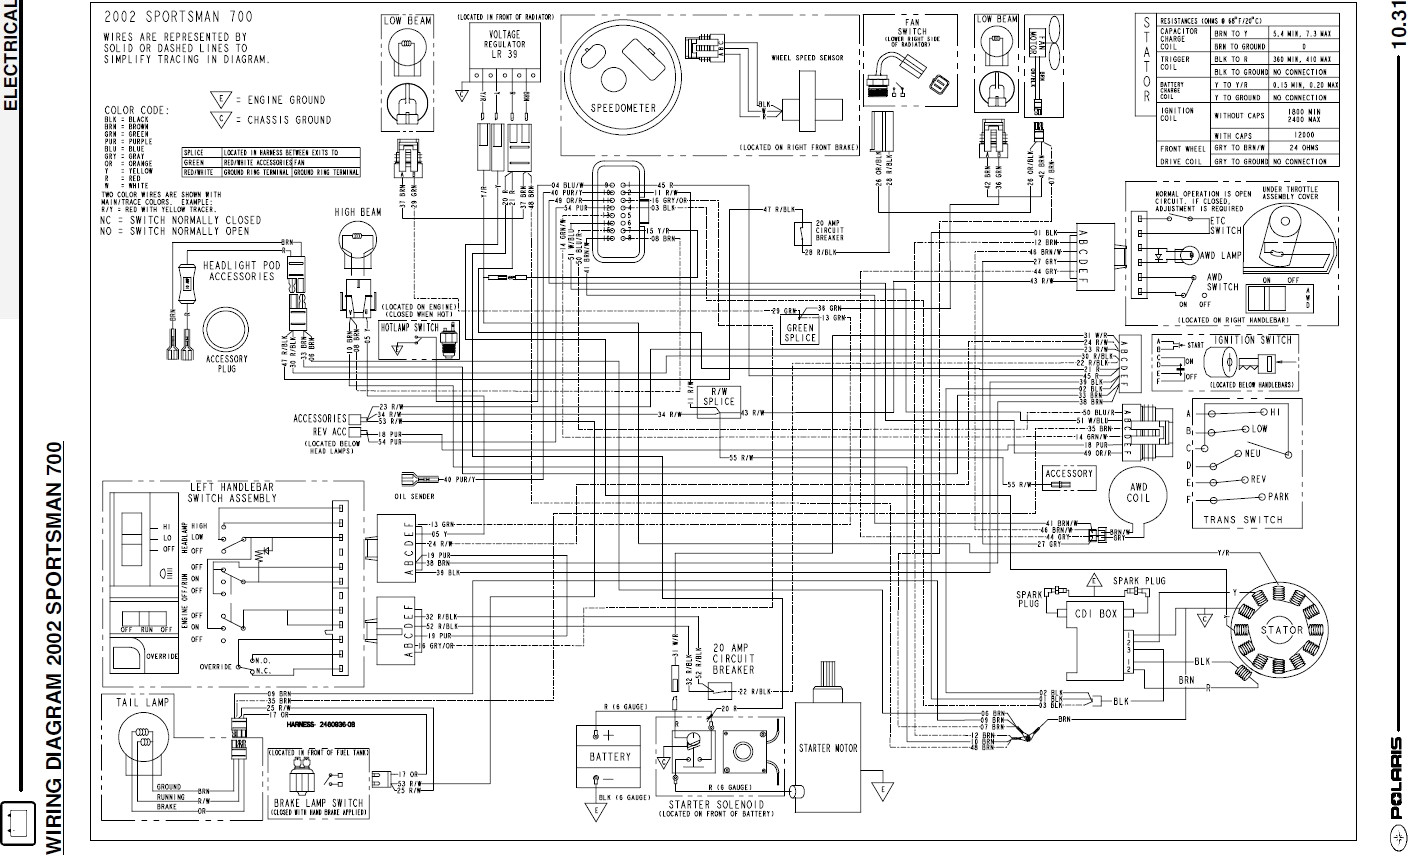 polaris ranger fuel pump wiring diagram collection polaris fuel pump diagram 08 f350 fuel pump diagram